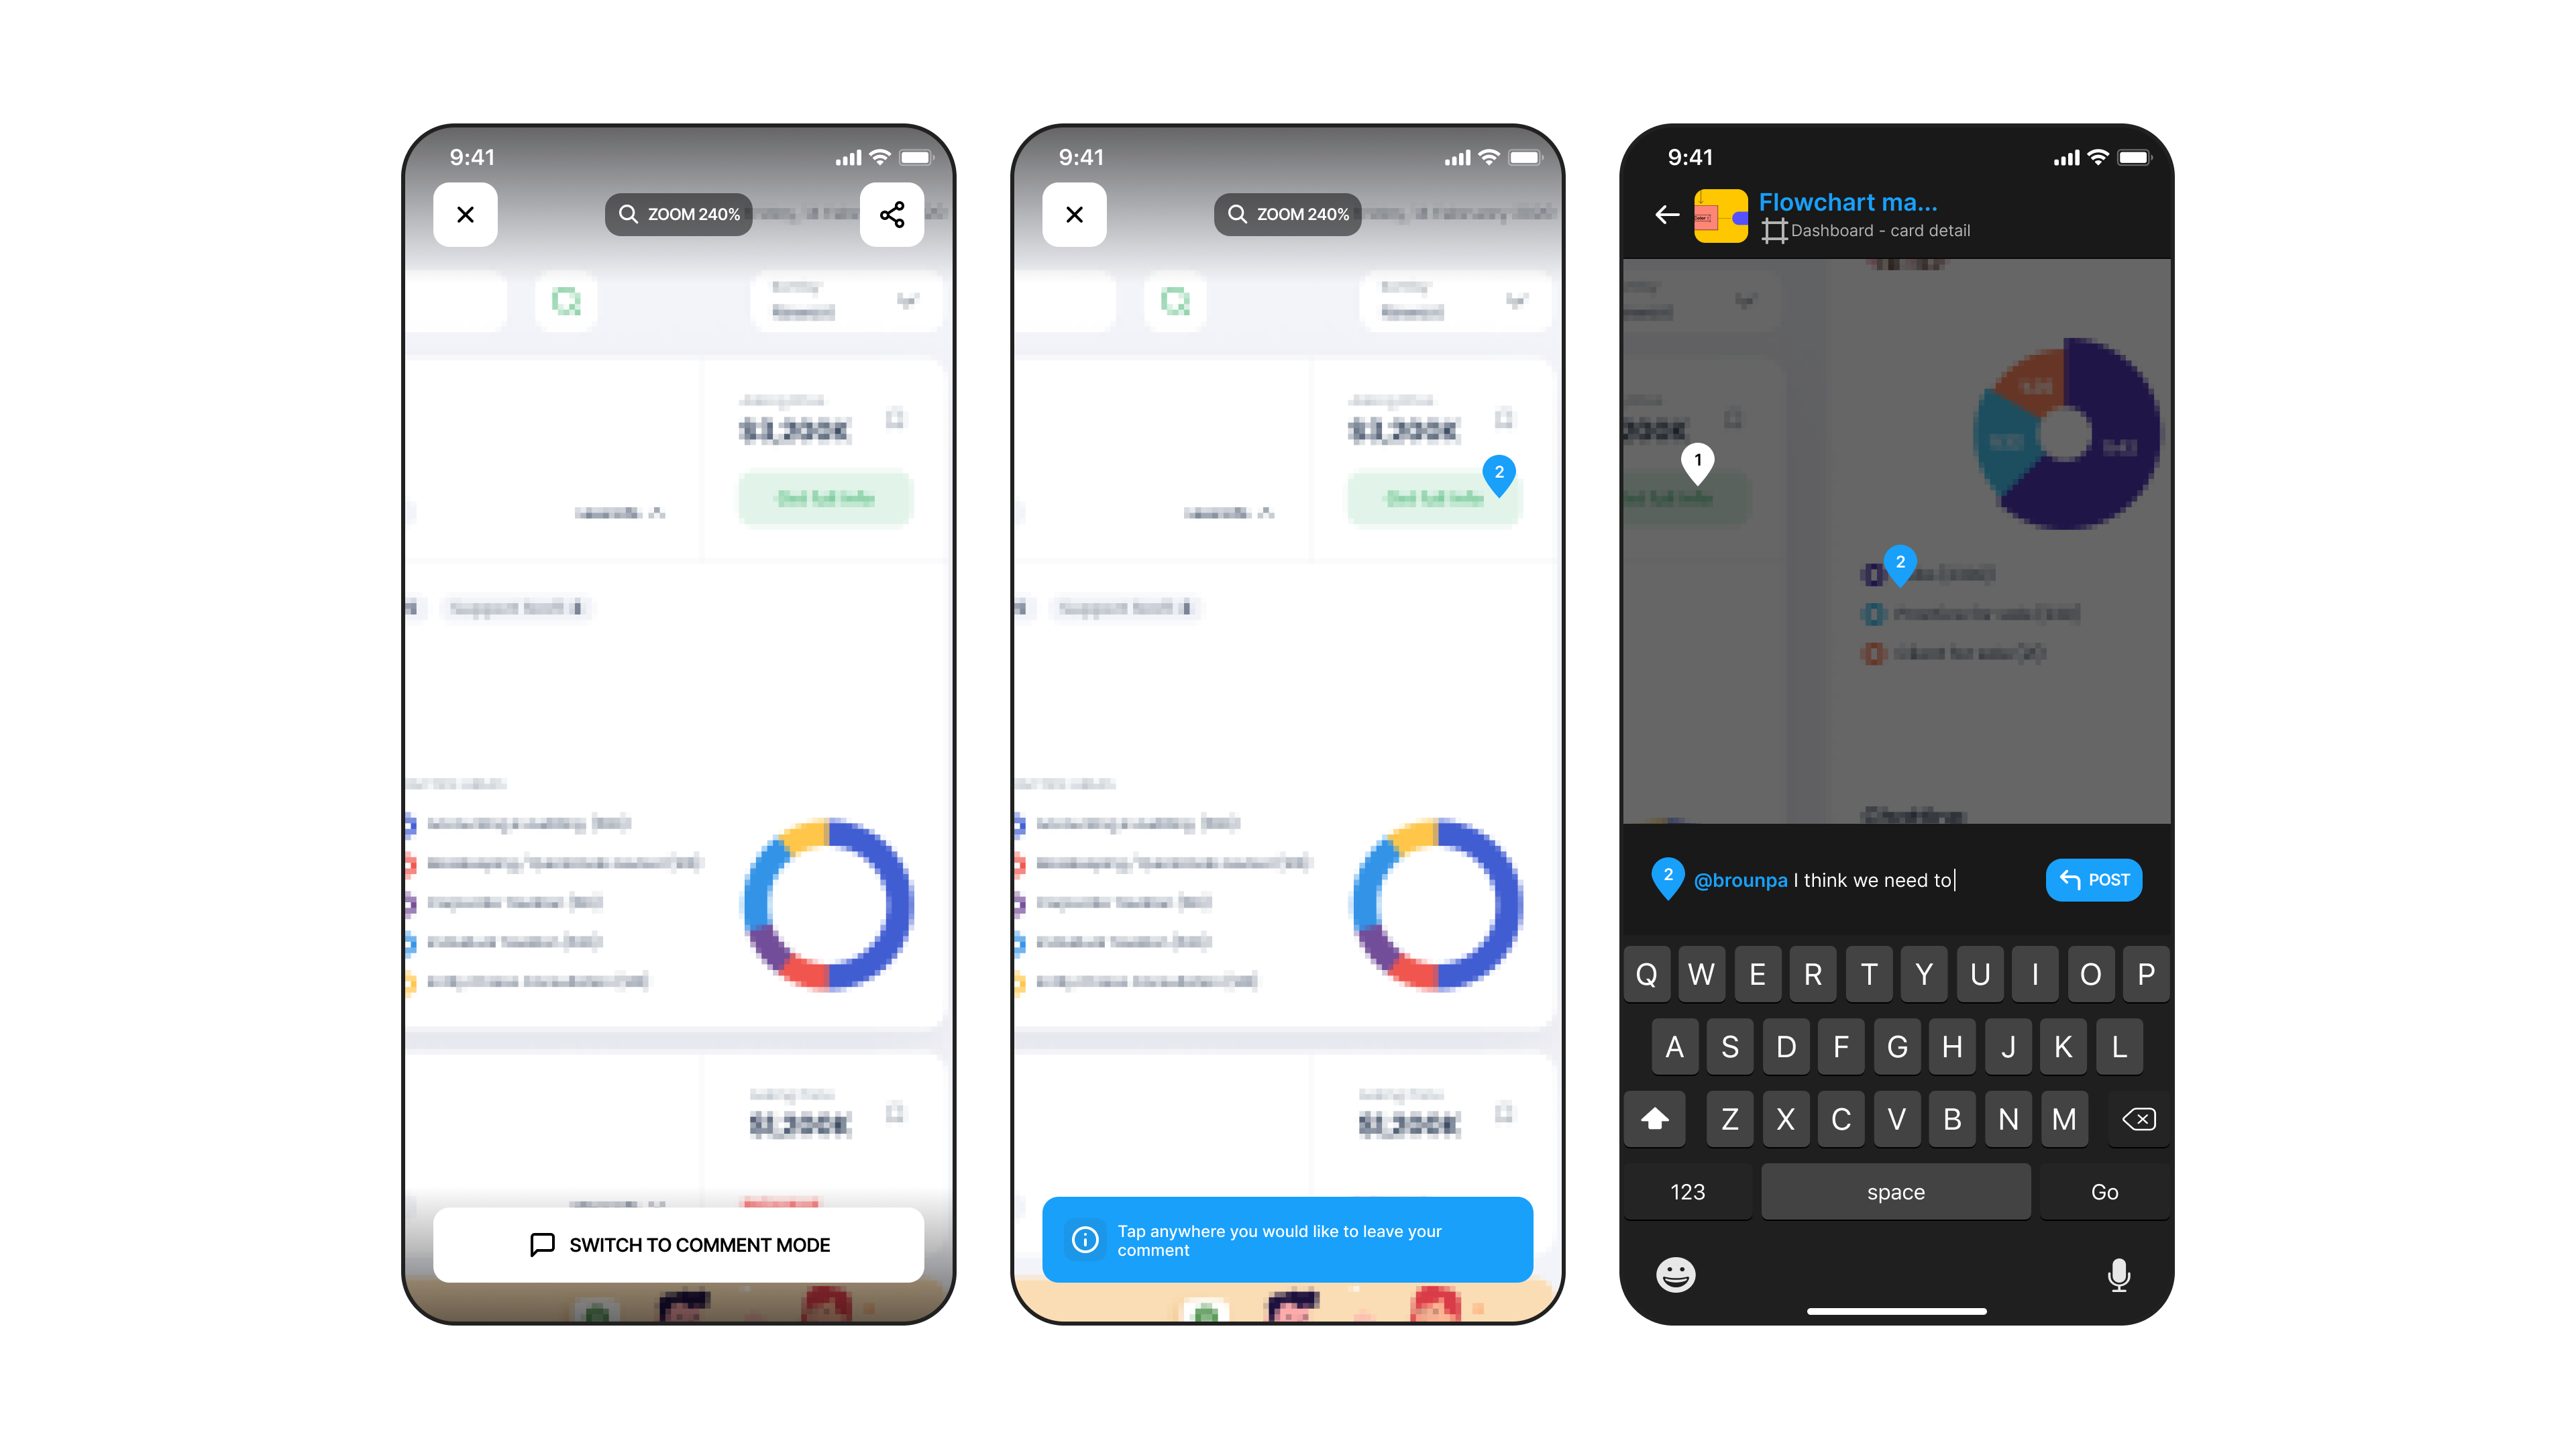 Comment Mode feature of Figma Mirror Redesign